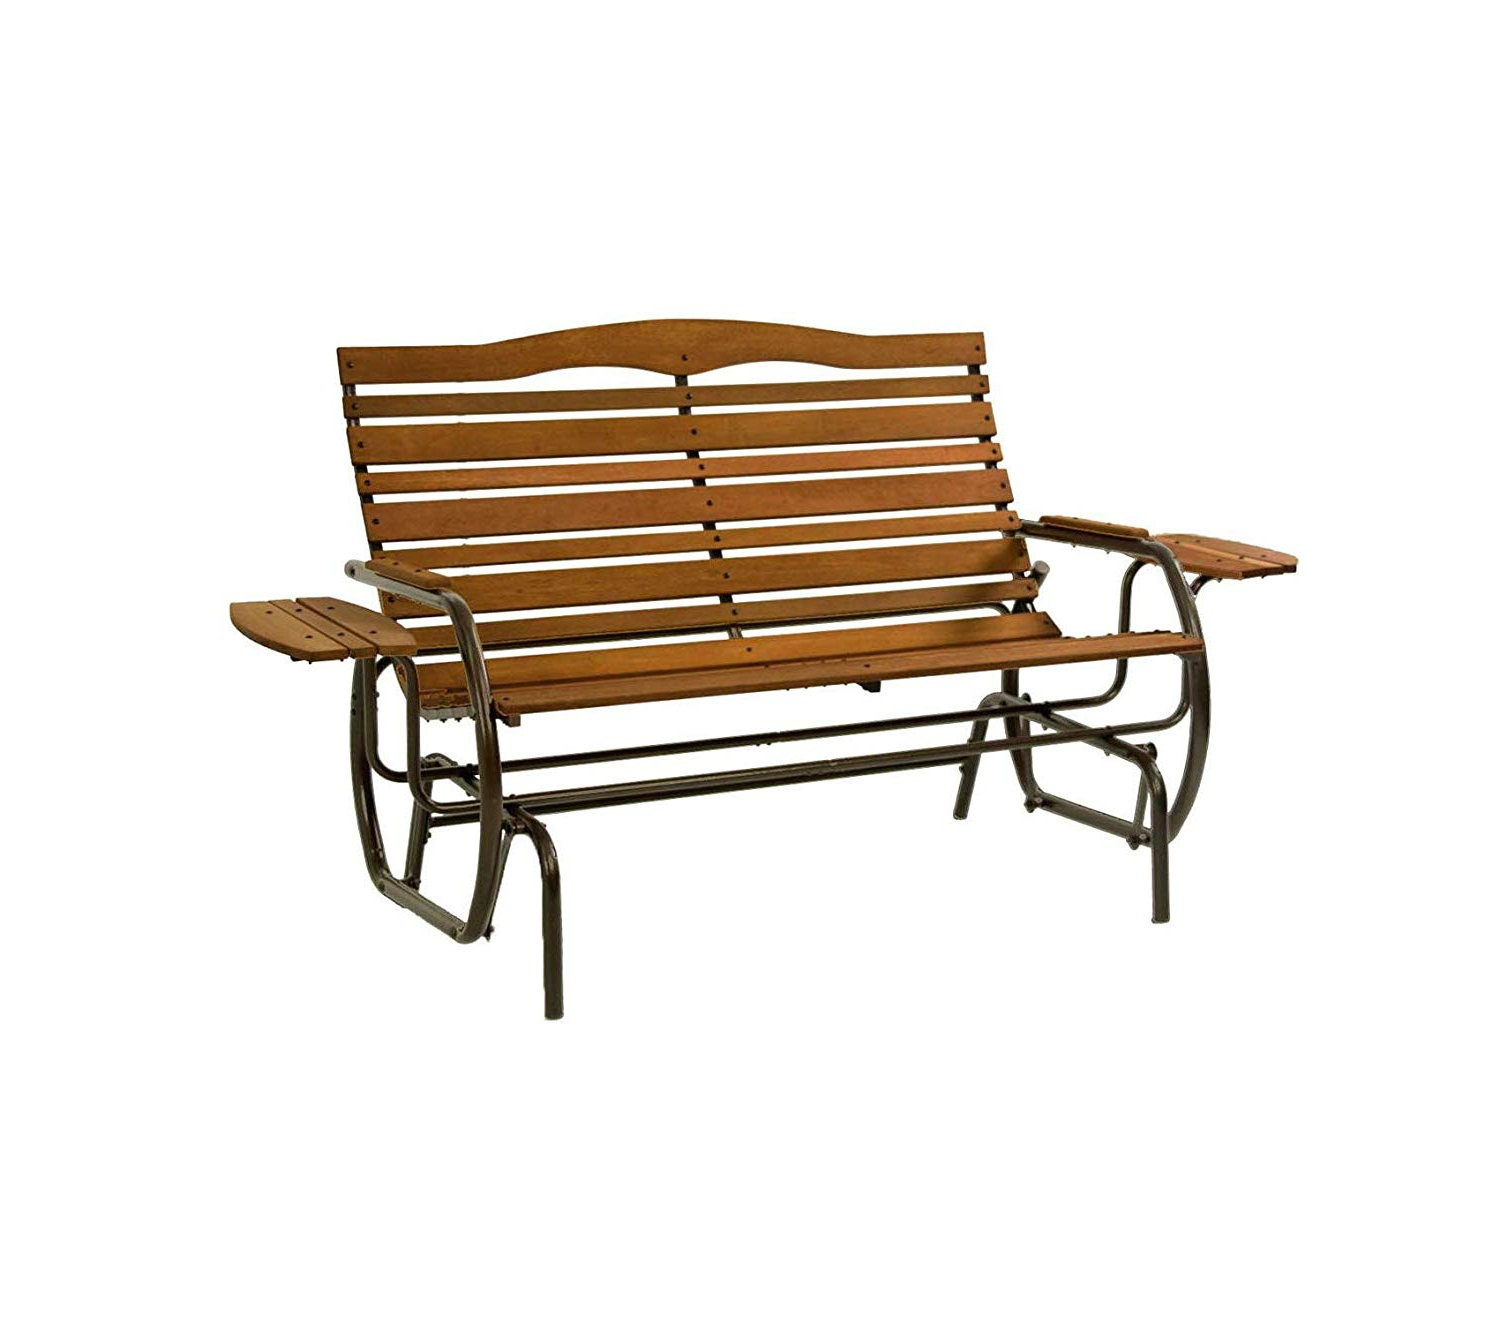 2020 Aluminum Outdoor Double Glider Benches For Jаck Pоst Patio Outdoor Garden Premium Country Garden Double Glider With  Trays, Bronze (View 1 of 30)